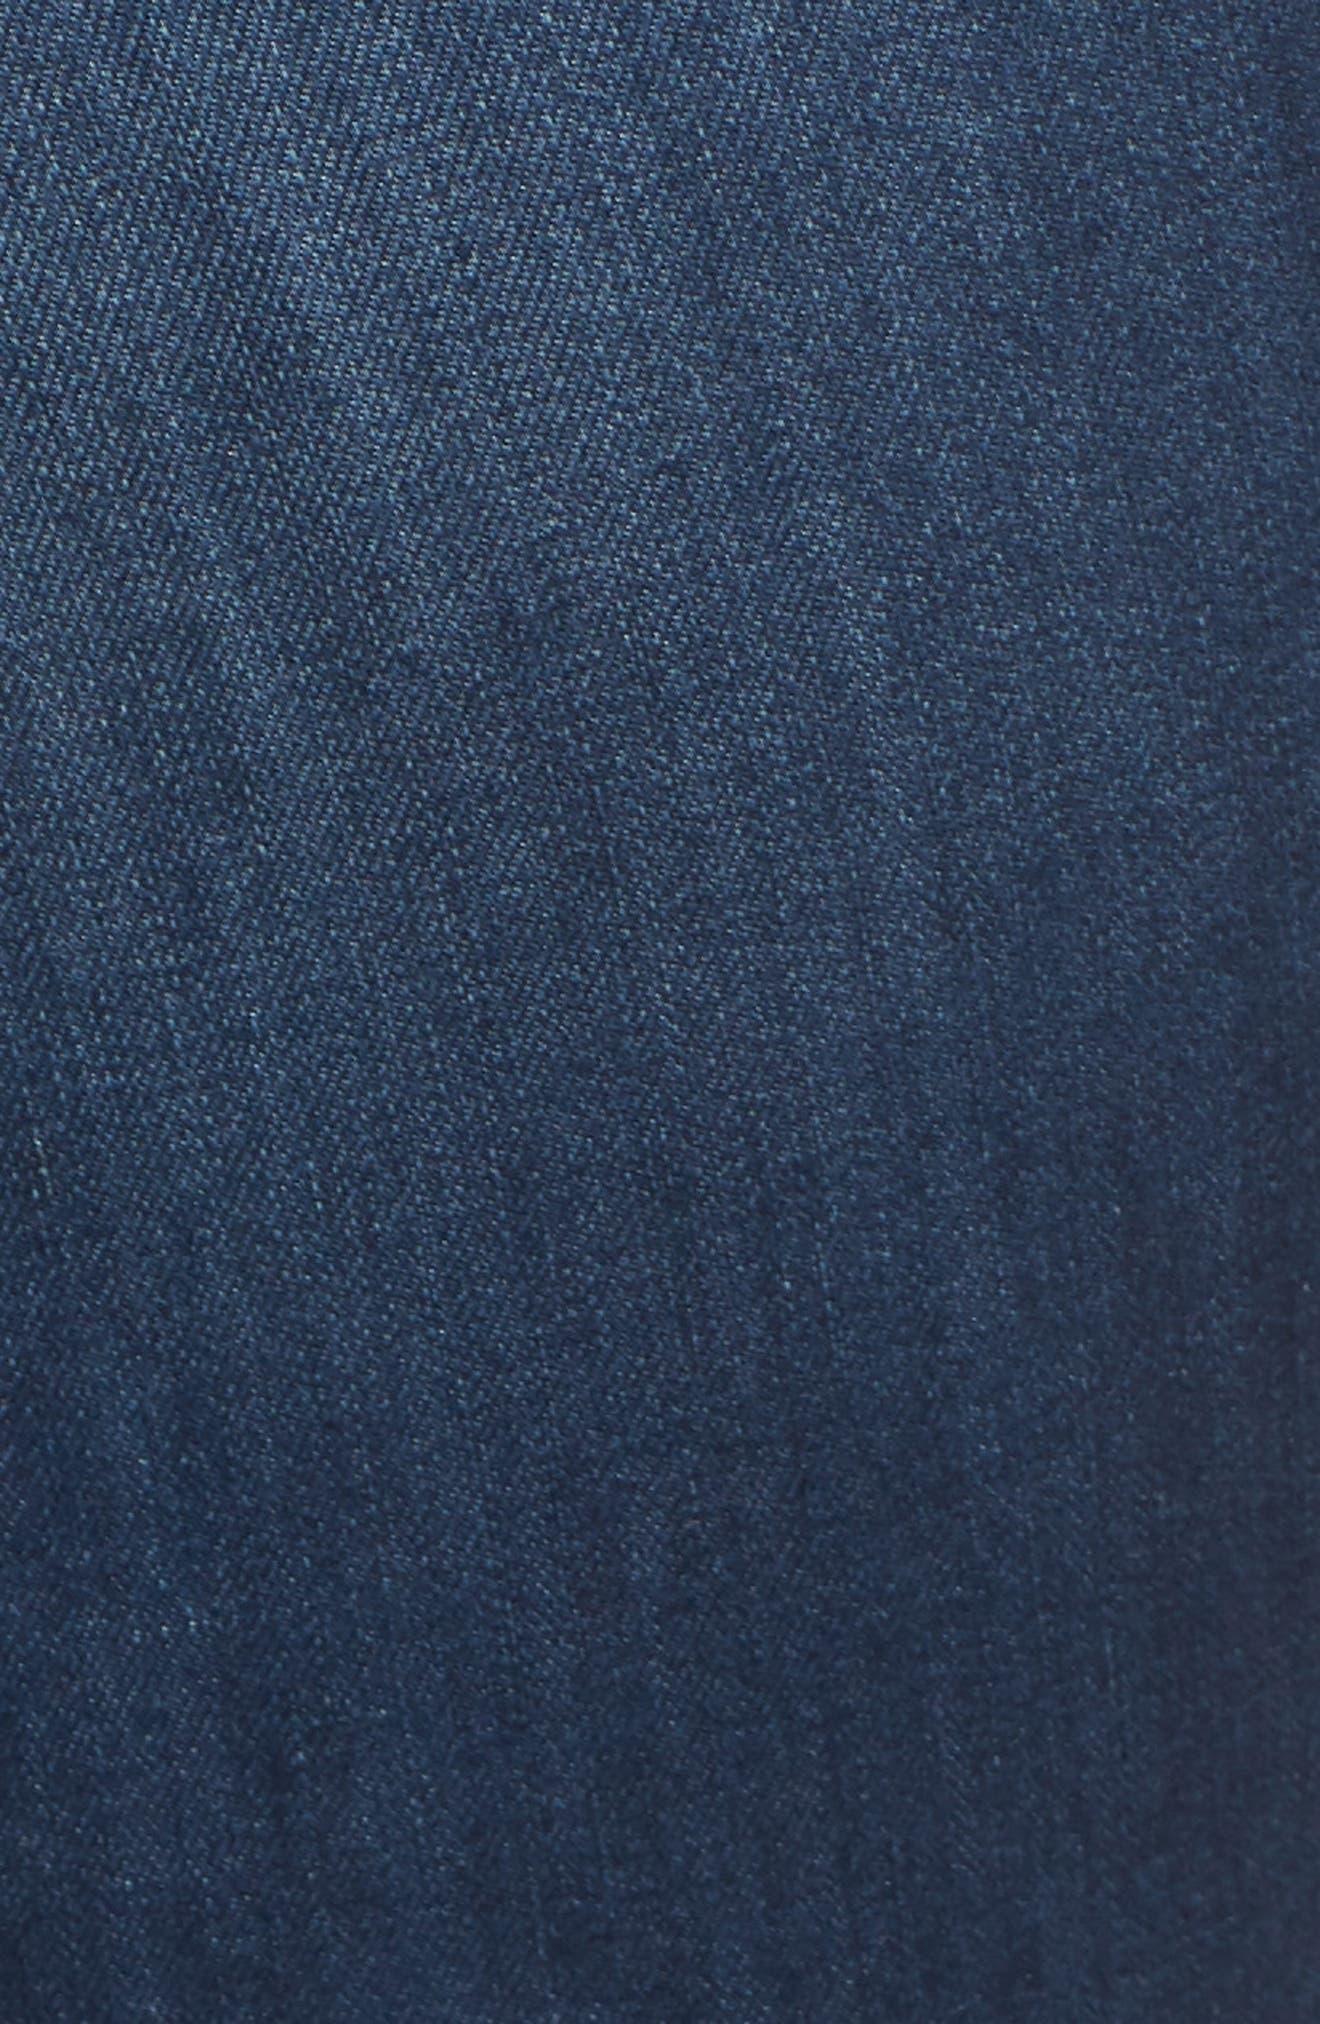 Ab-Solution Itty Bitty Bootcut Jeans,                             Alternate thumbnail 6, color,                             BLUE